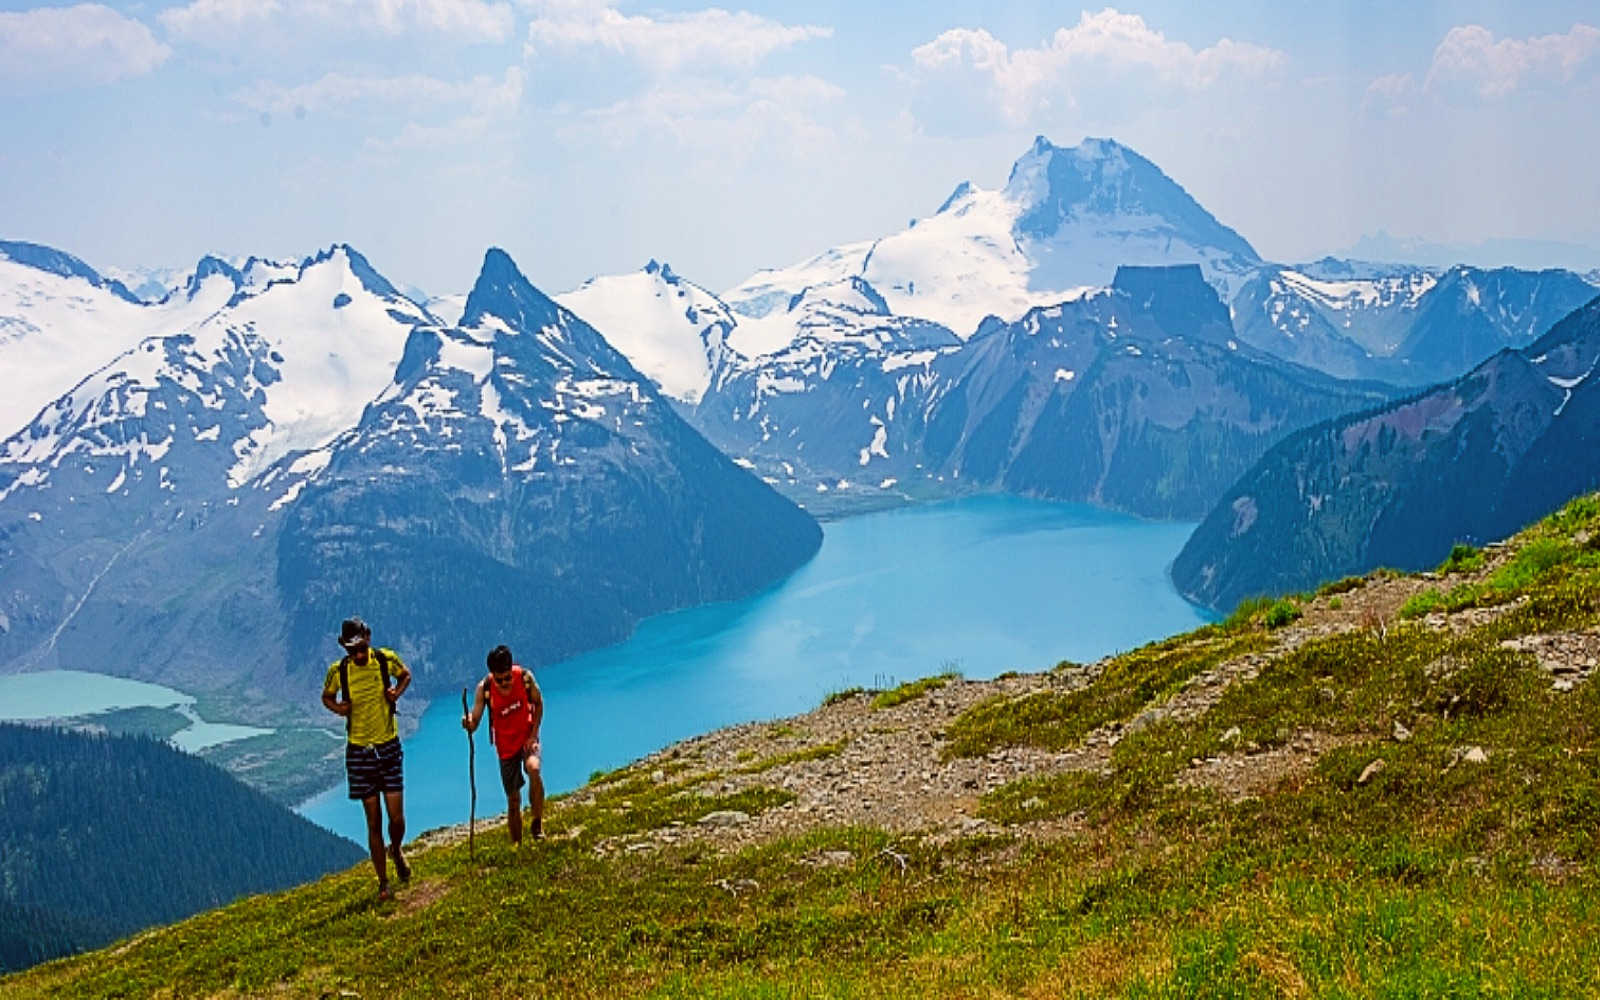 A pair of hikers around Whistler, BC